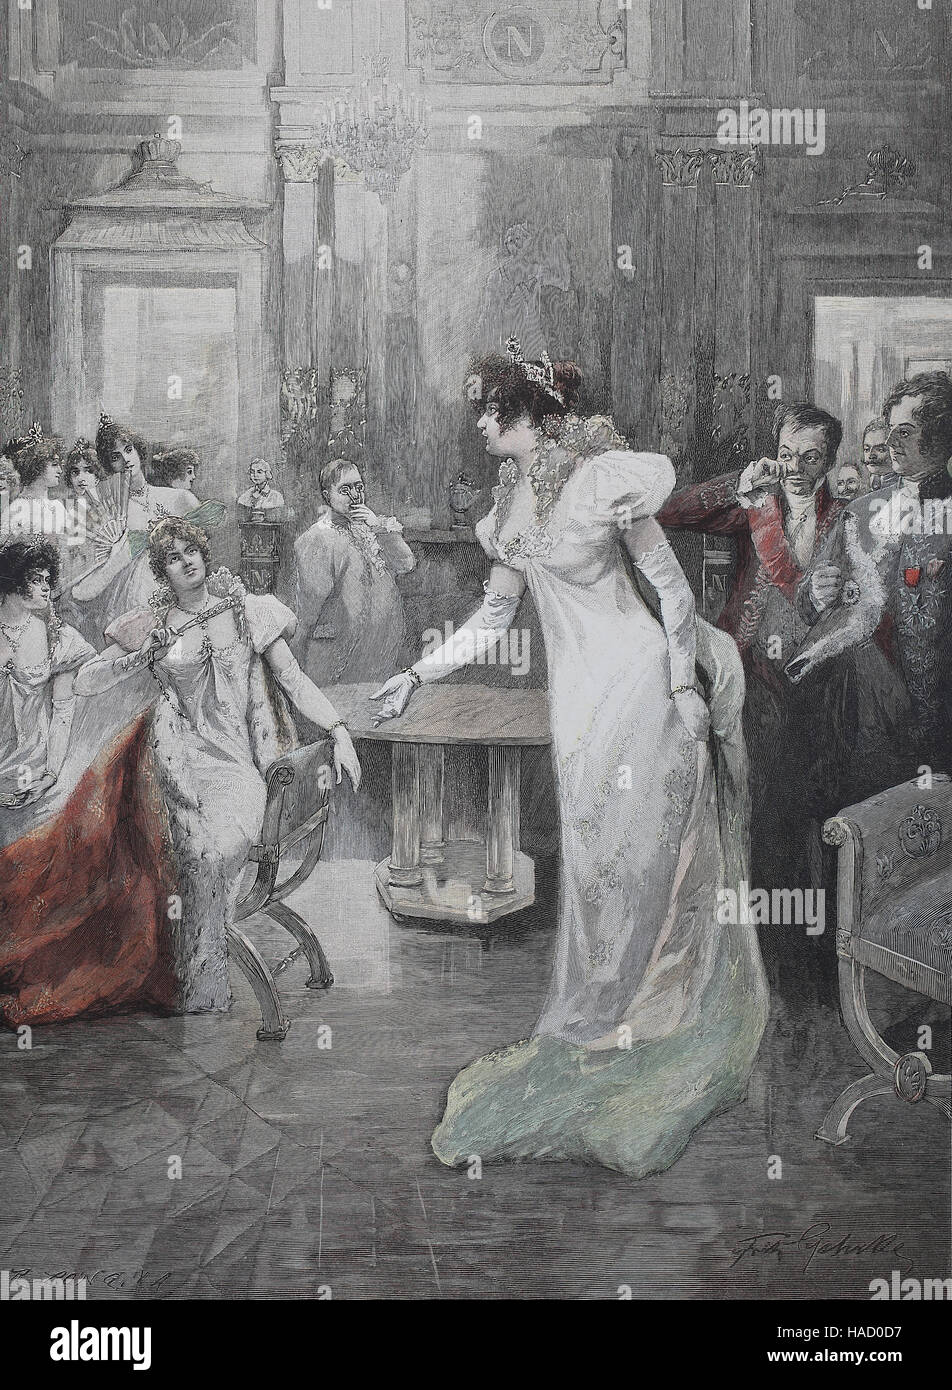 Scene from Madame Sans-Gene, an opera in three acts by Umberto Giordano, illustration published in 1880 - Stock Image